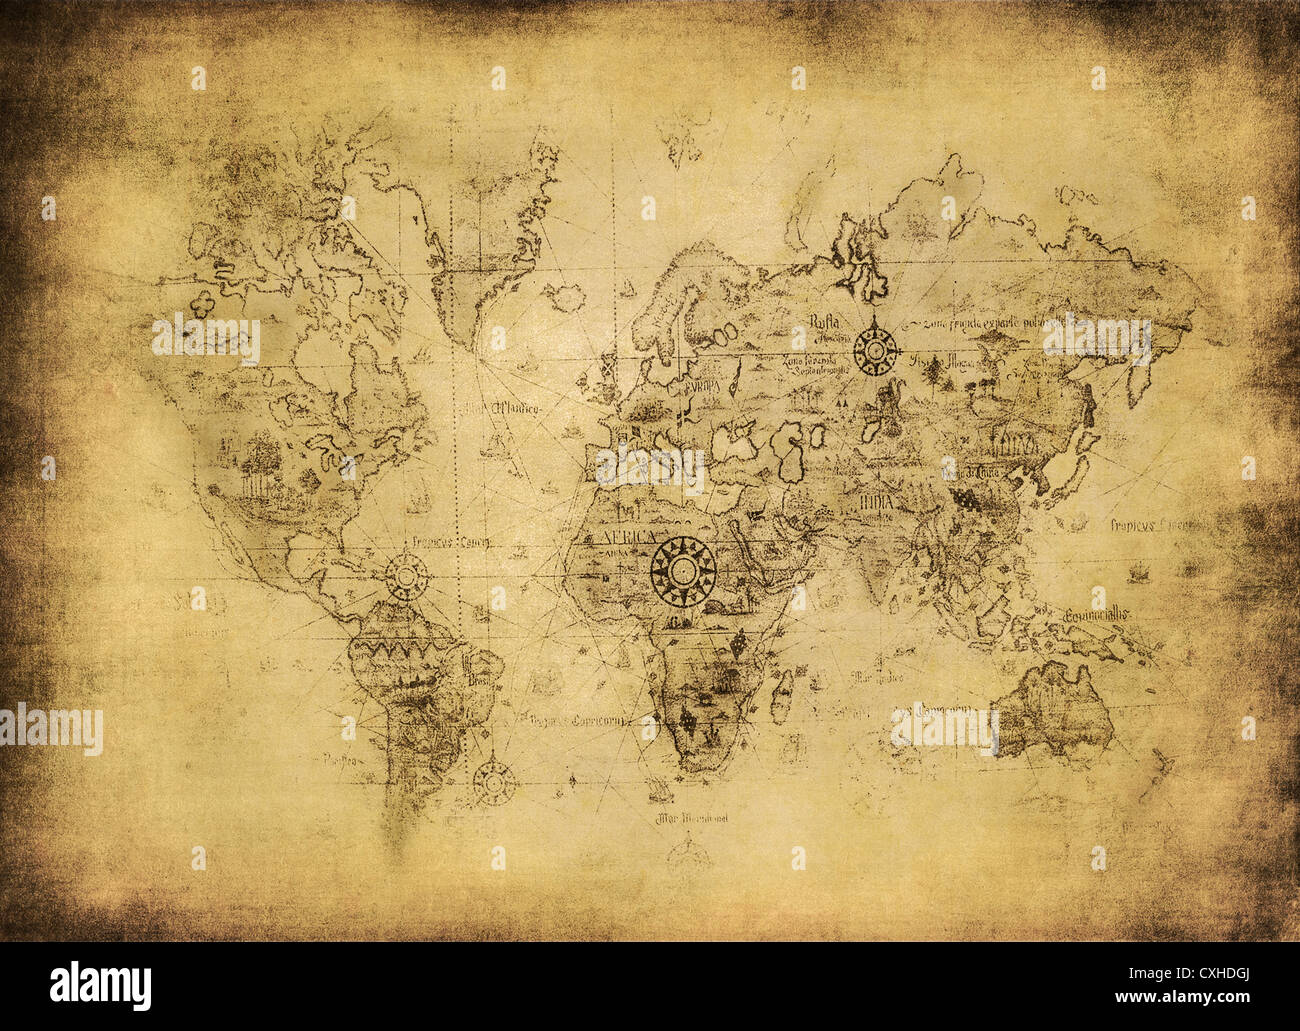 ancient map of the world - Stock Image